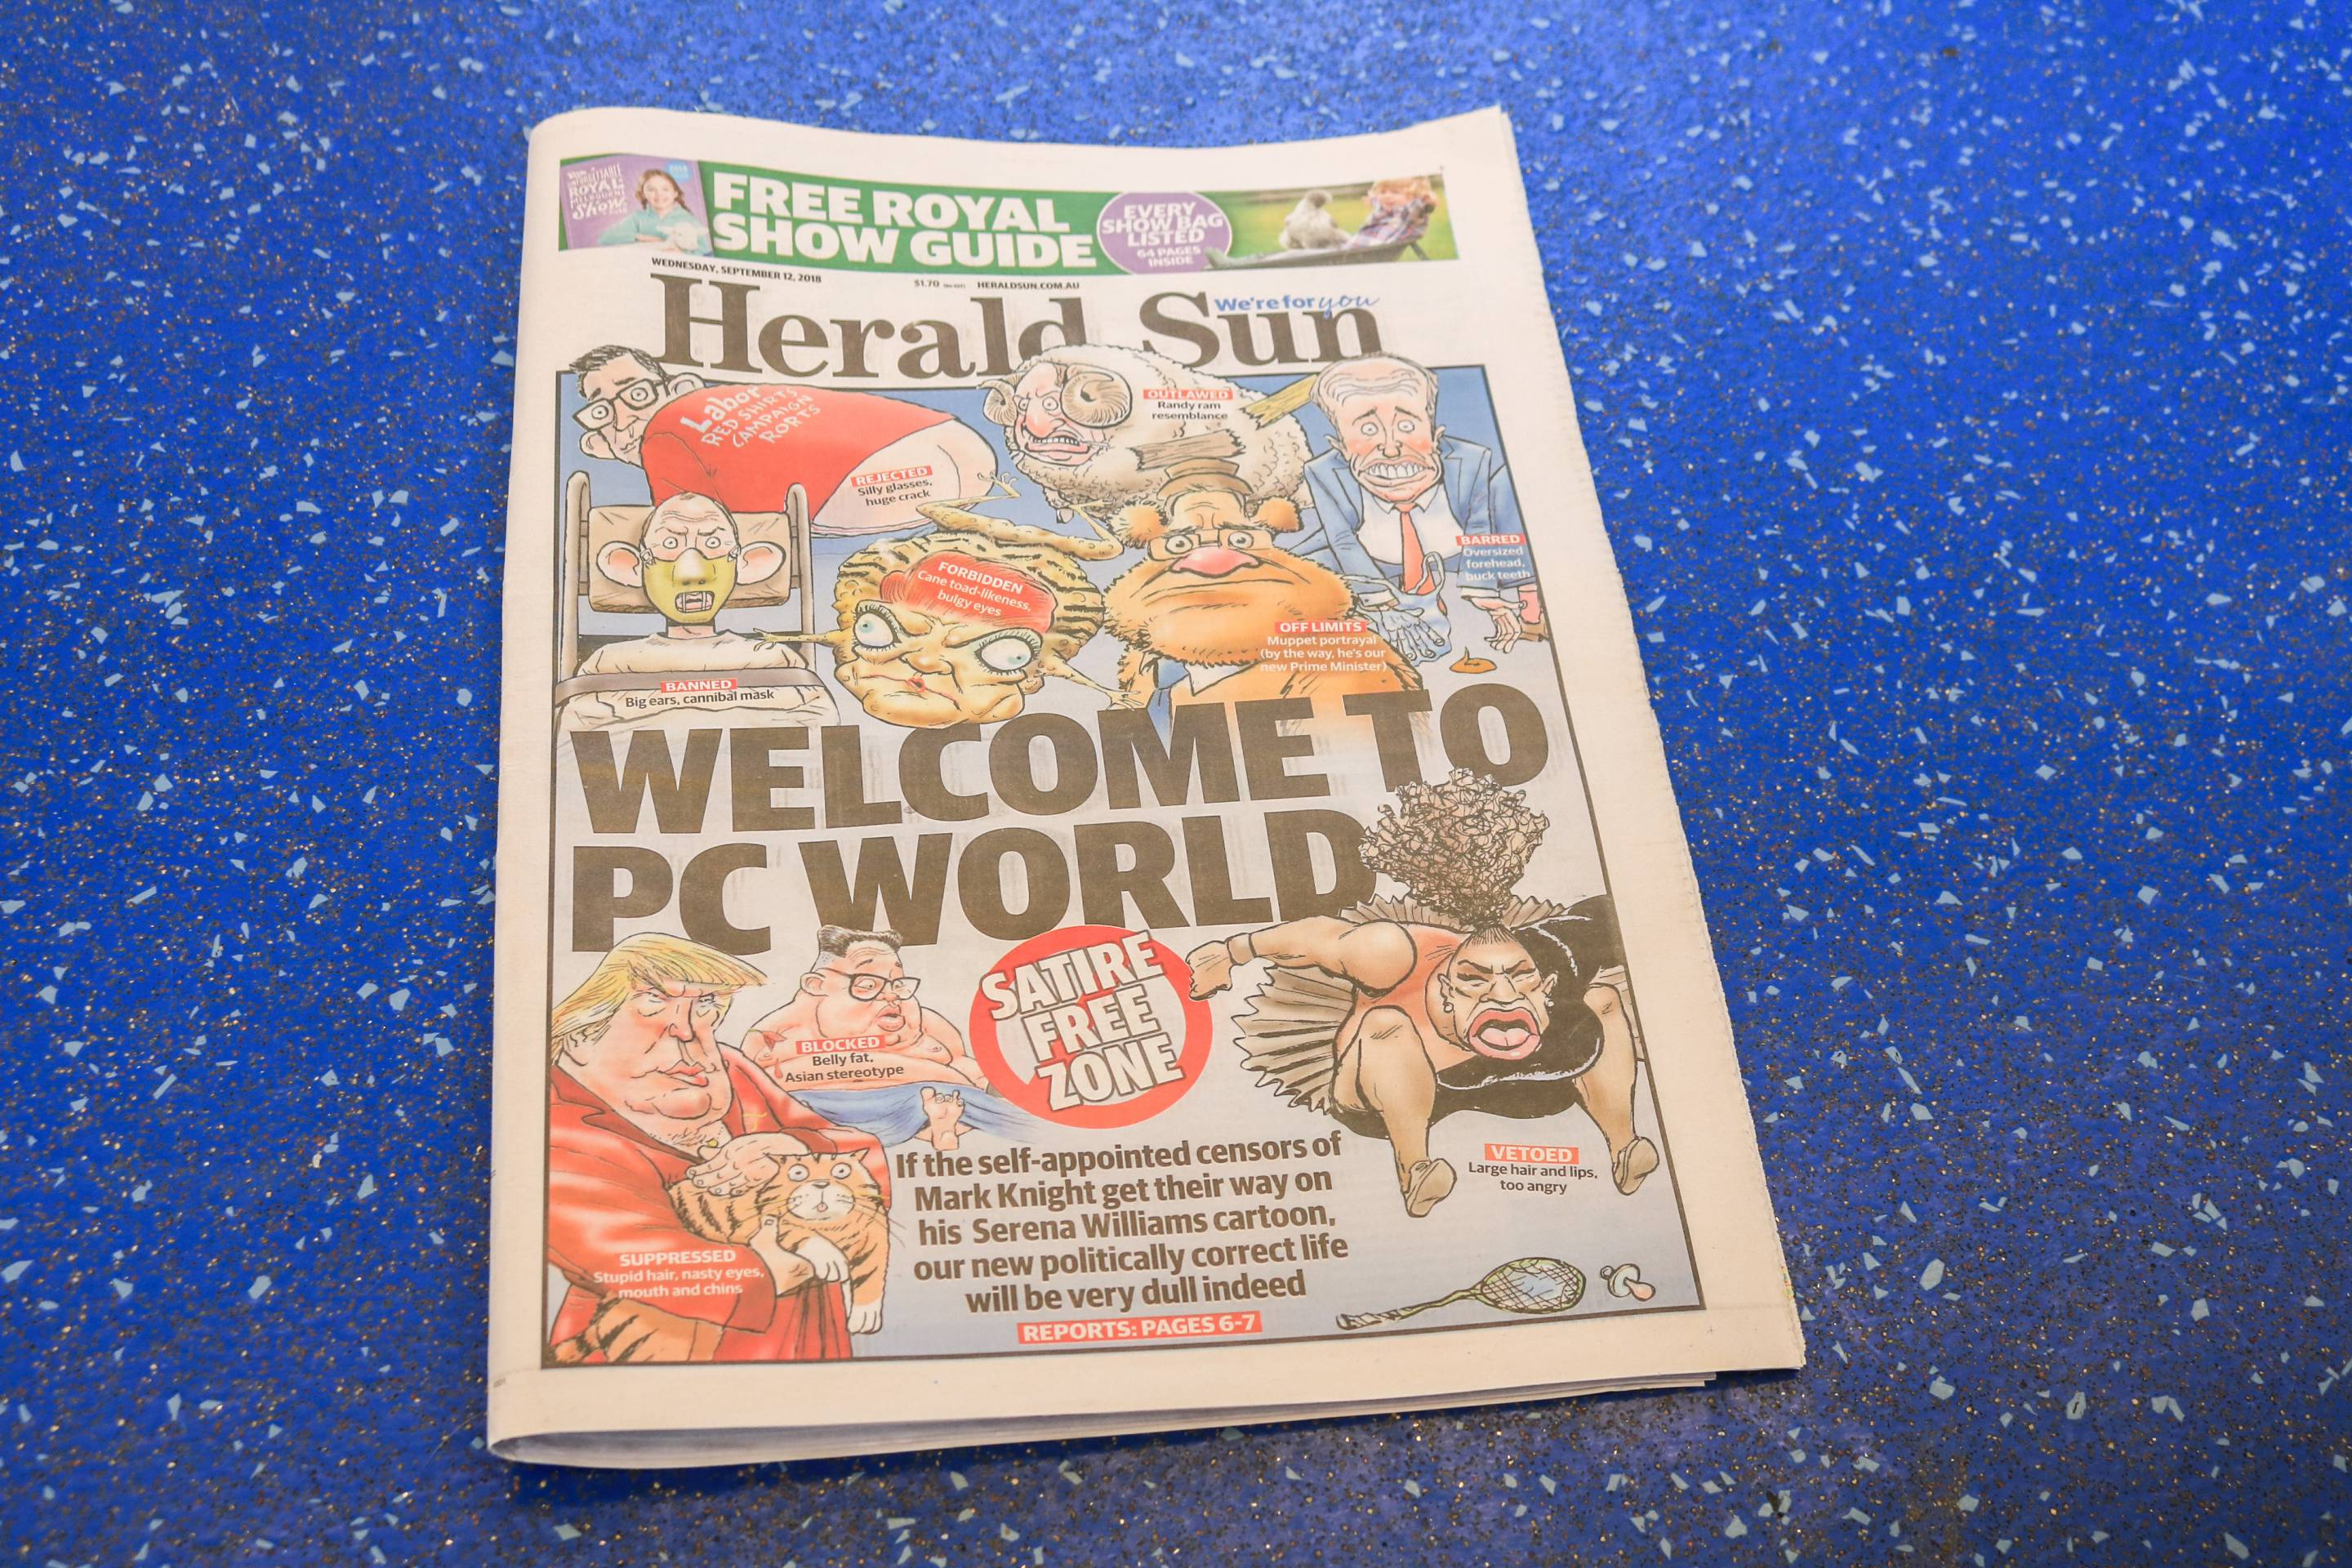 News Corp Newspaper Puts Serena Williams Cartoon on Front